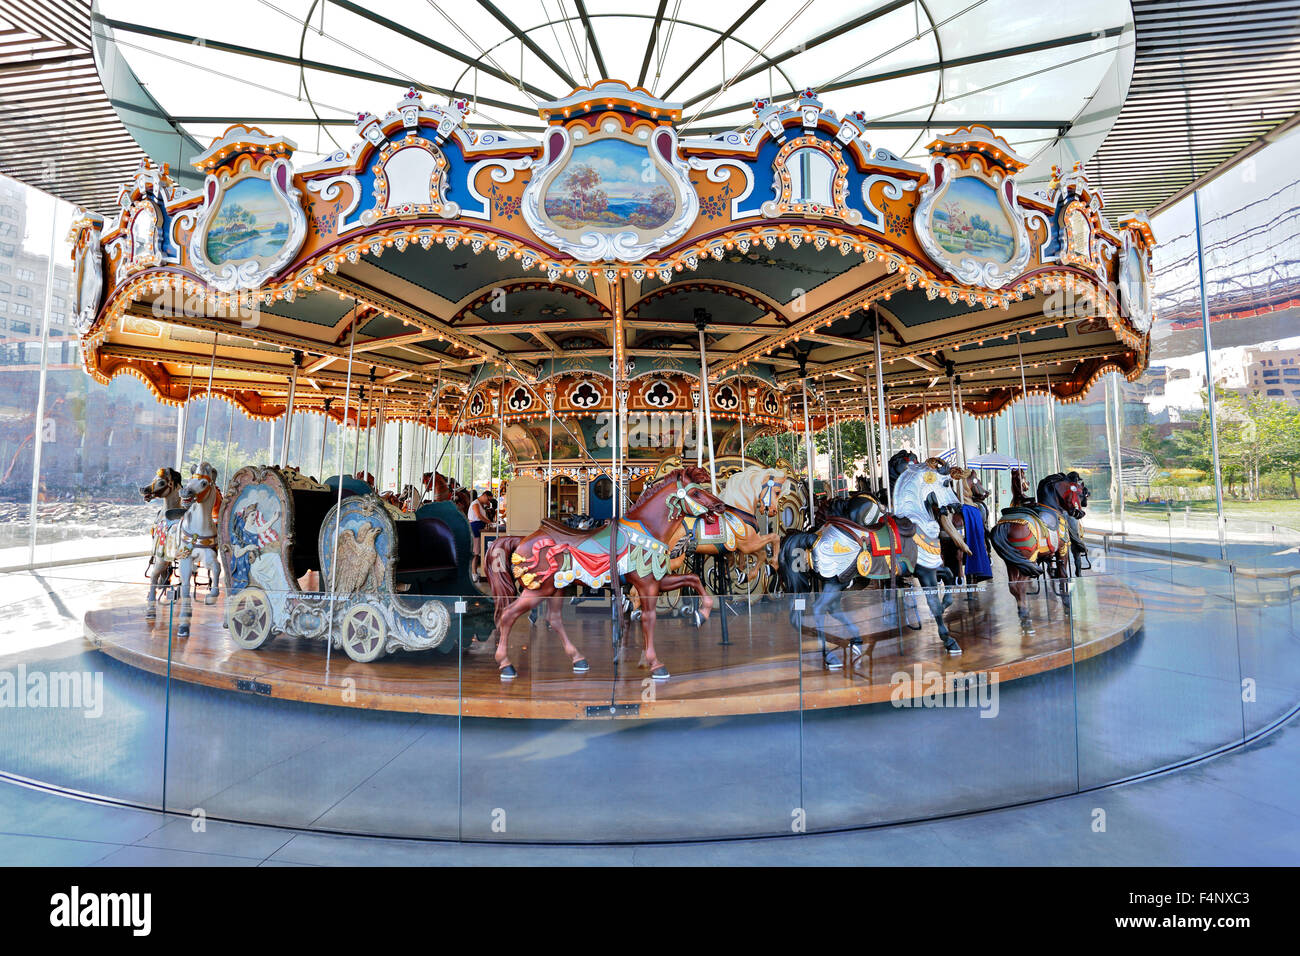 Jane's Carousel under the Brooklyn Bridge at Brooklyn Bridge Park Brooklyn New York City - Stock Image